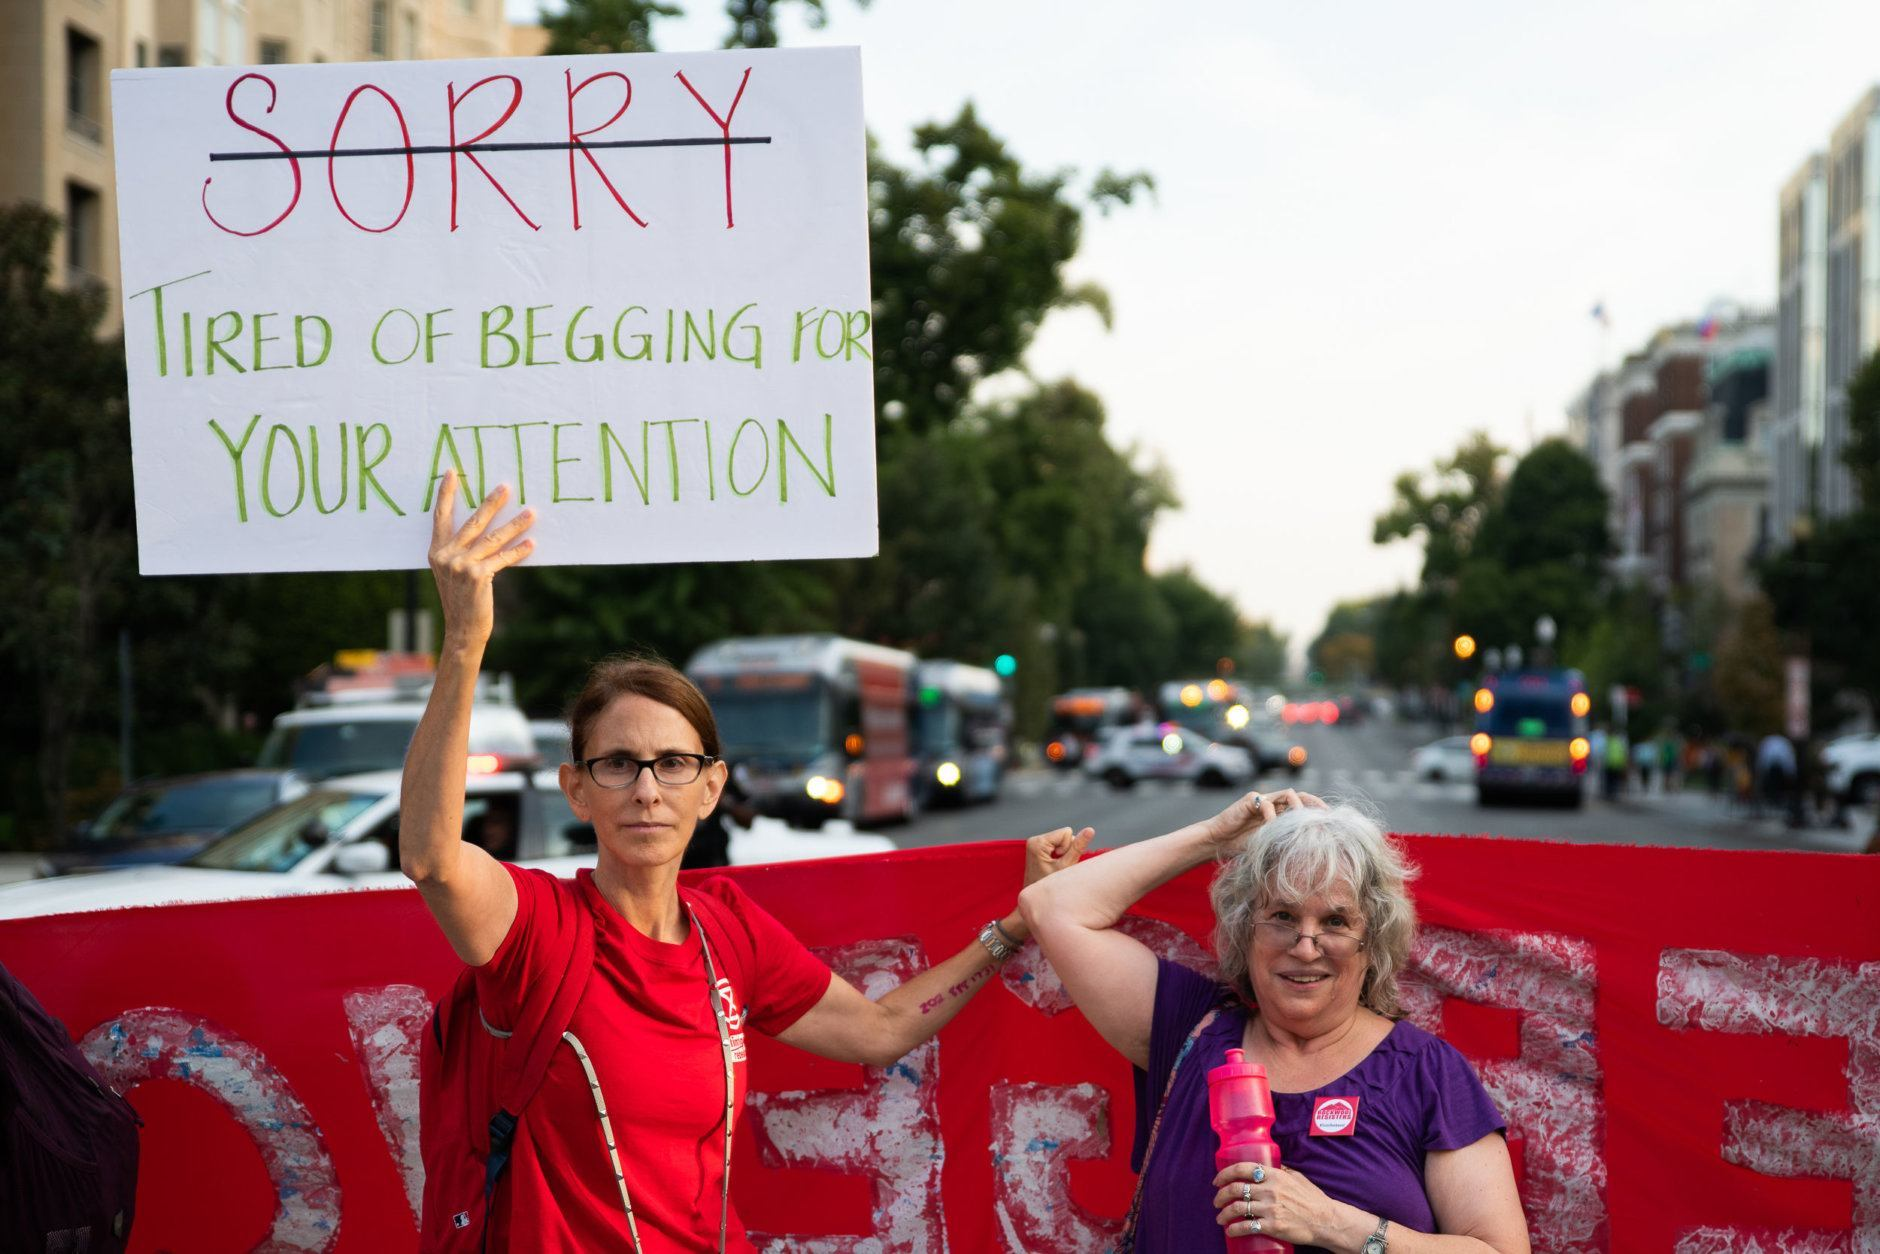 A protester explains justifies her blocking of traffic to commuters impacted by an Extinction Rebellion action in downtown D.C. on Sept. 23, 2019. Environmental activists pressured lawmakers to declare a climate change emergency by paralyzing morning traffic in the nation's capital. (WTOP/Alejandro Alvarez)